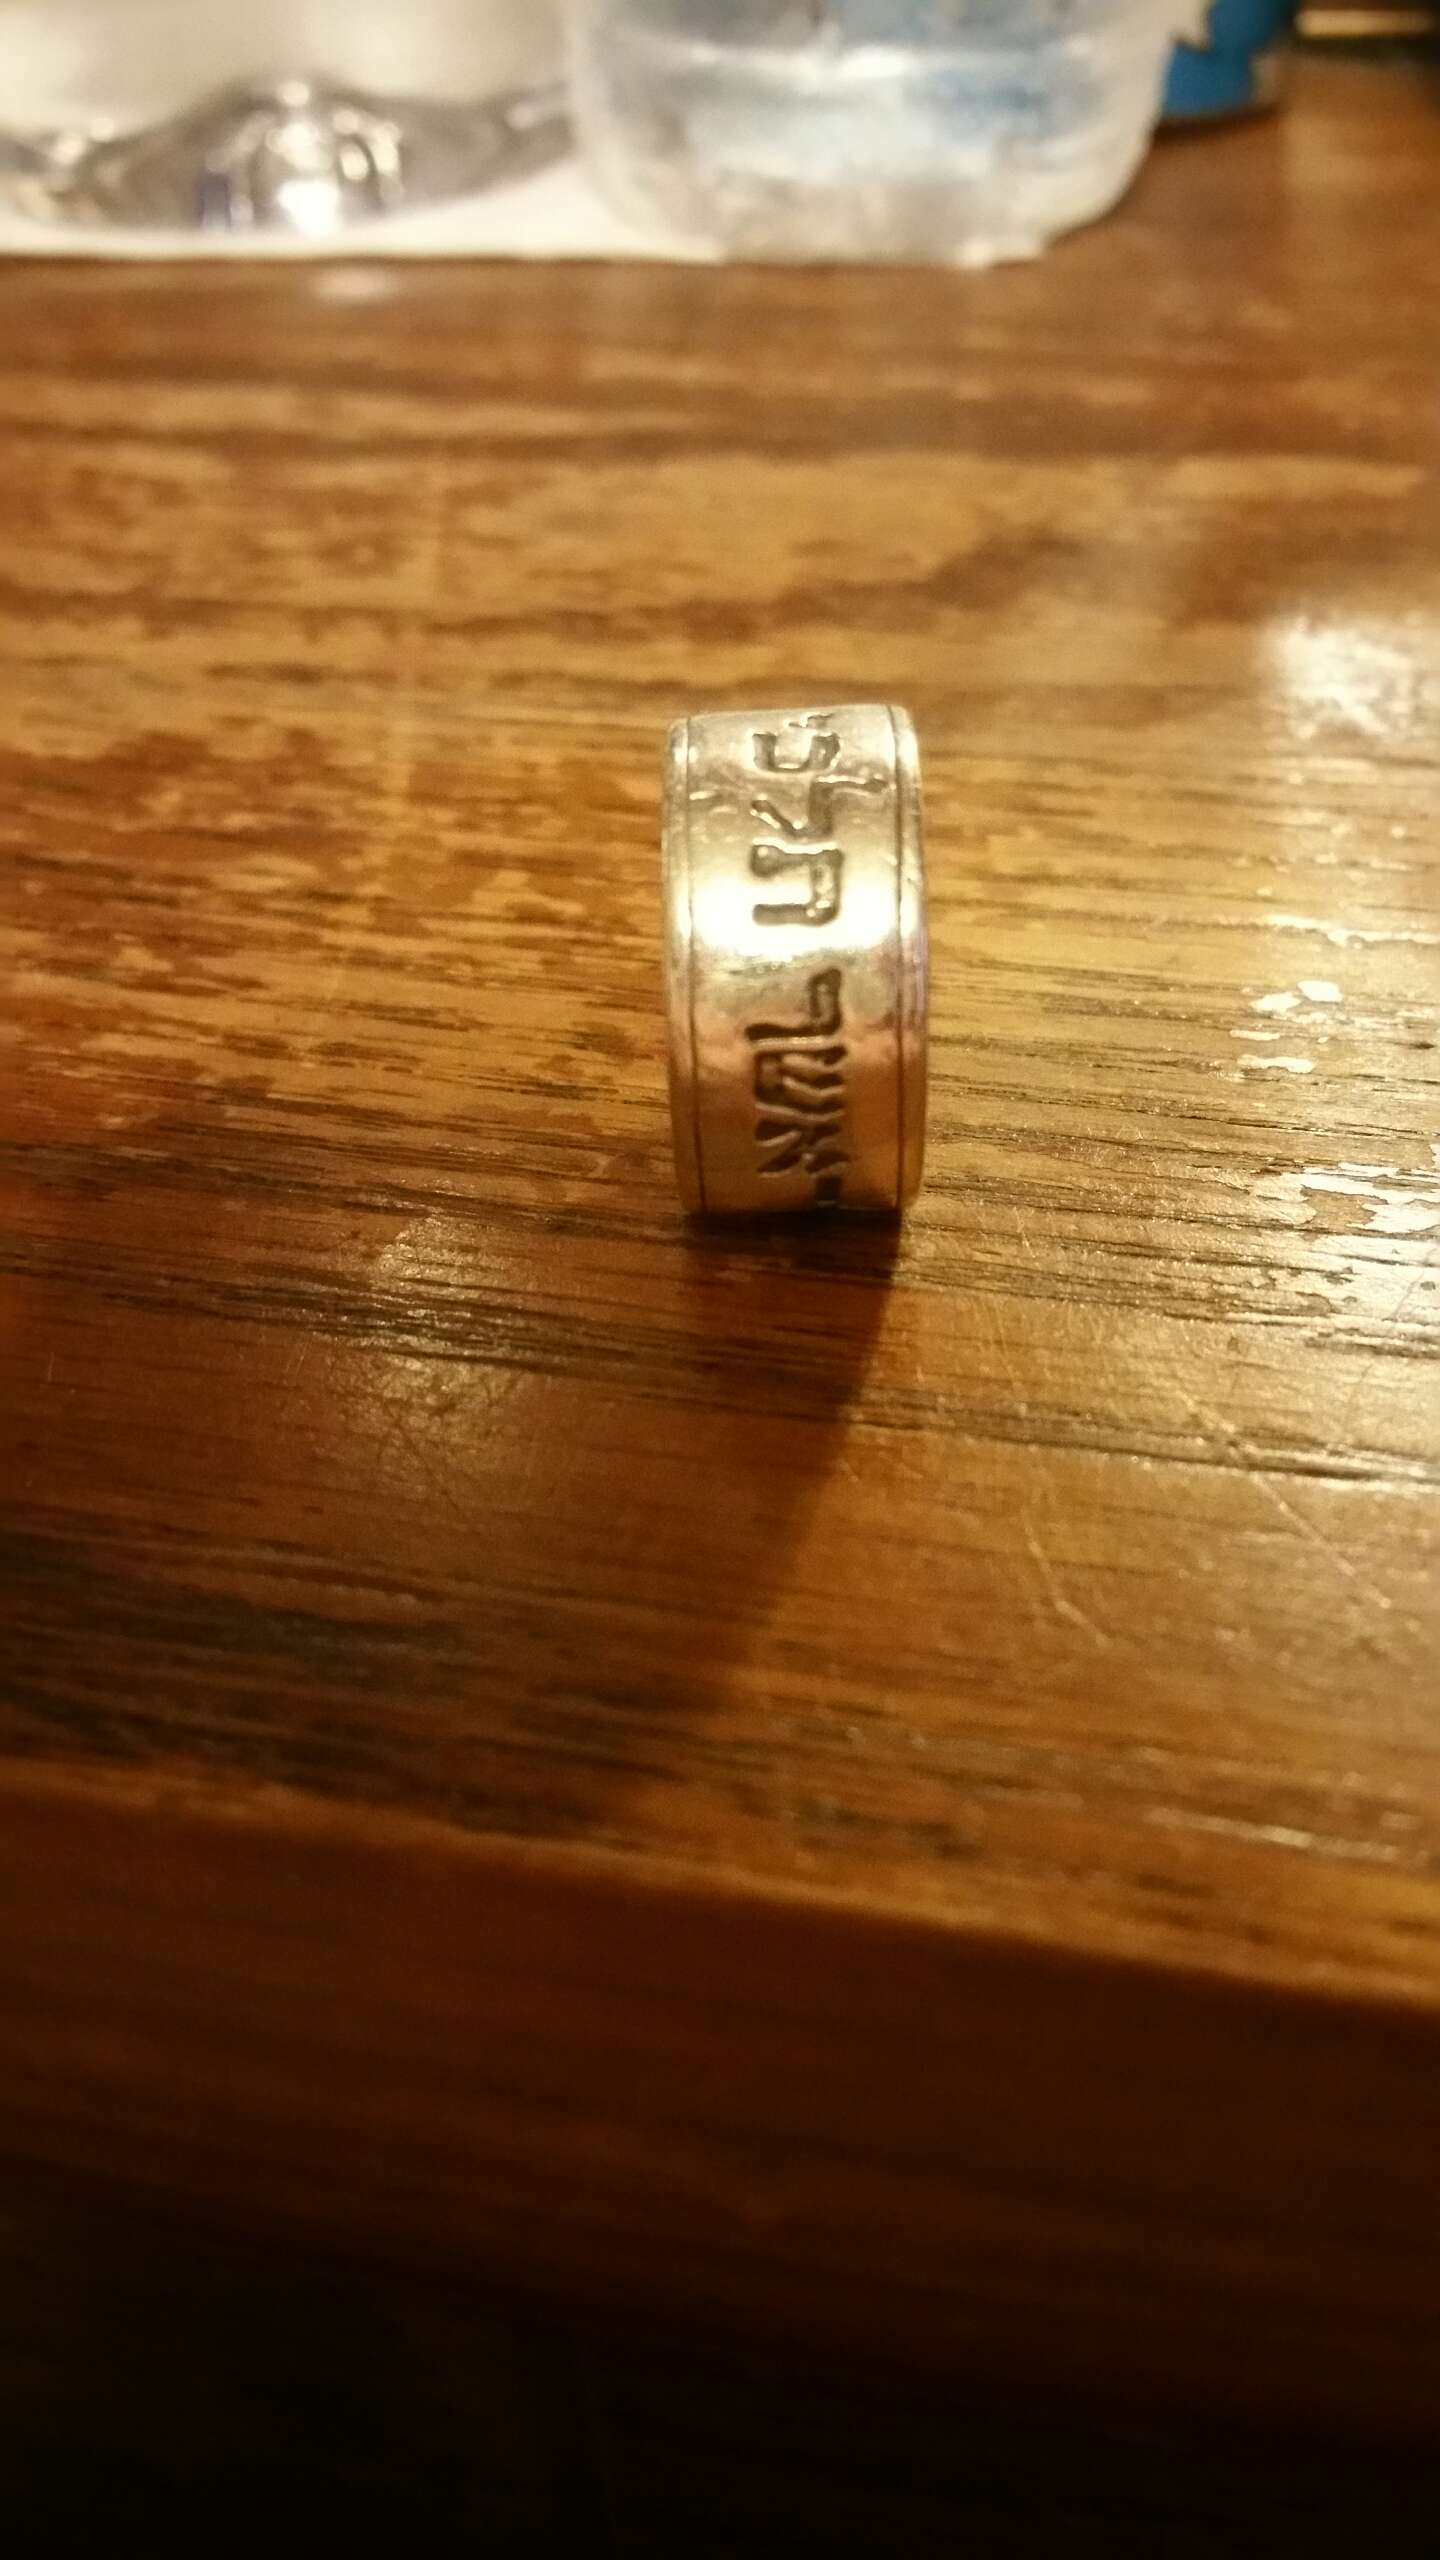 james avery ruth 1:16 ring james avery wedding bands James Avery Ruth 1 16 Ring In Hebrew The scripture reads Wherever